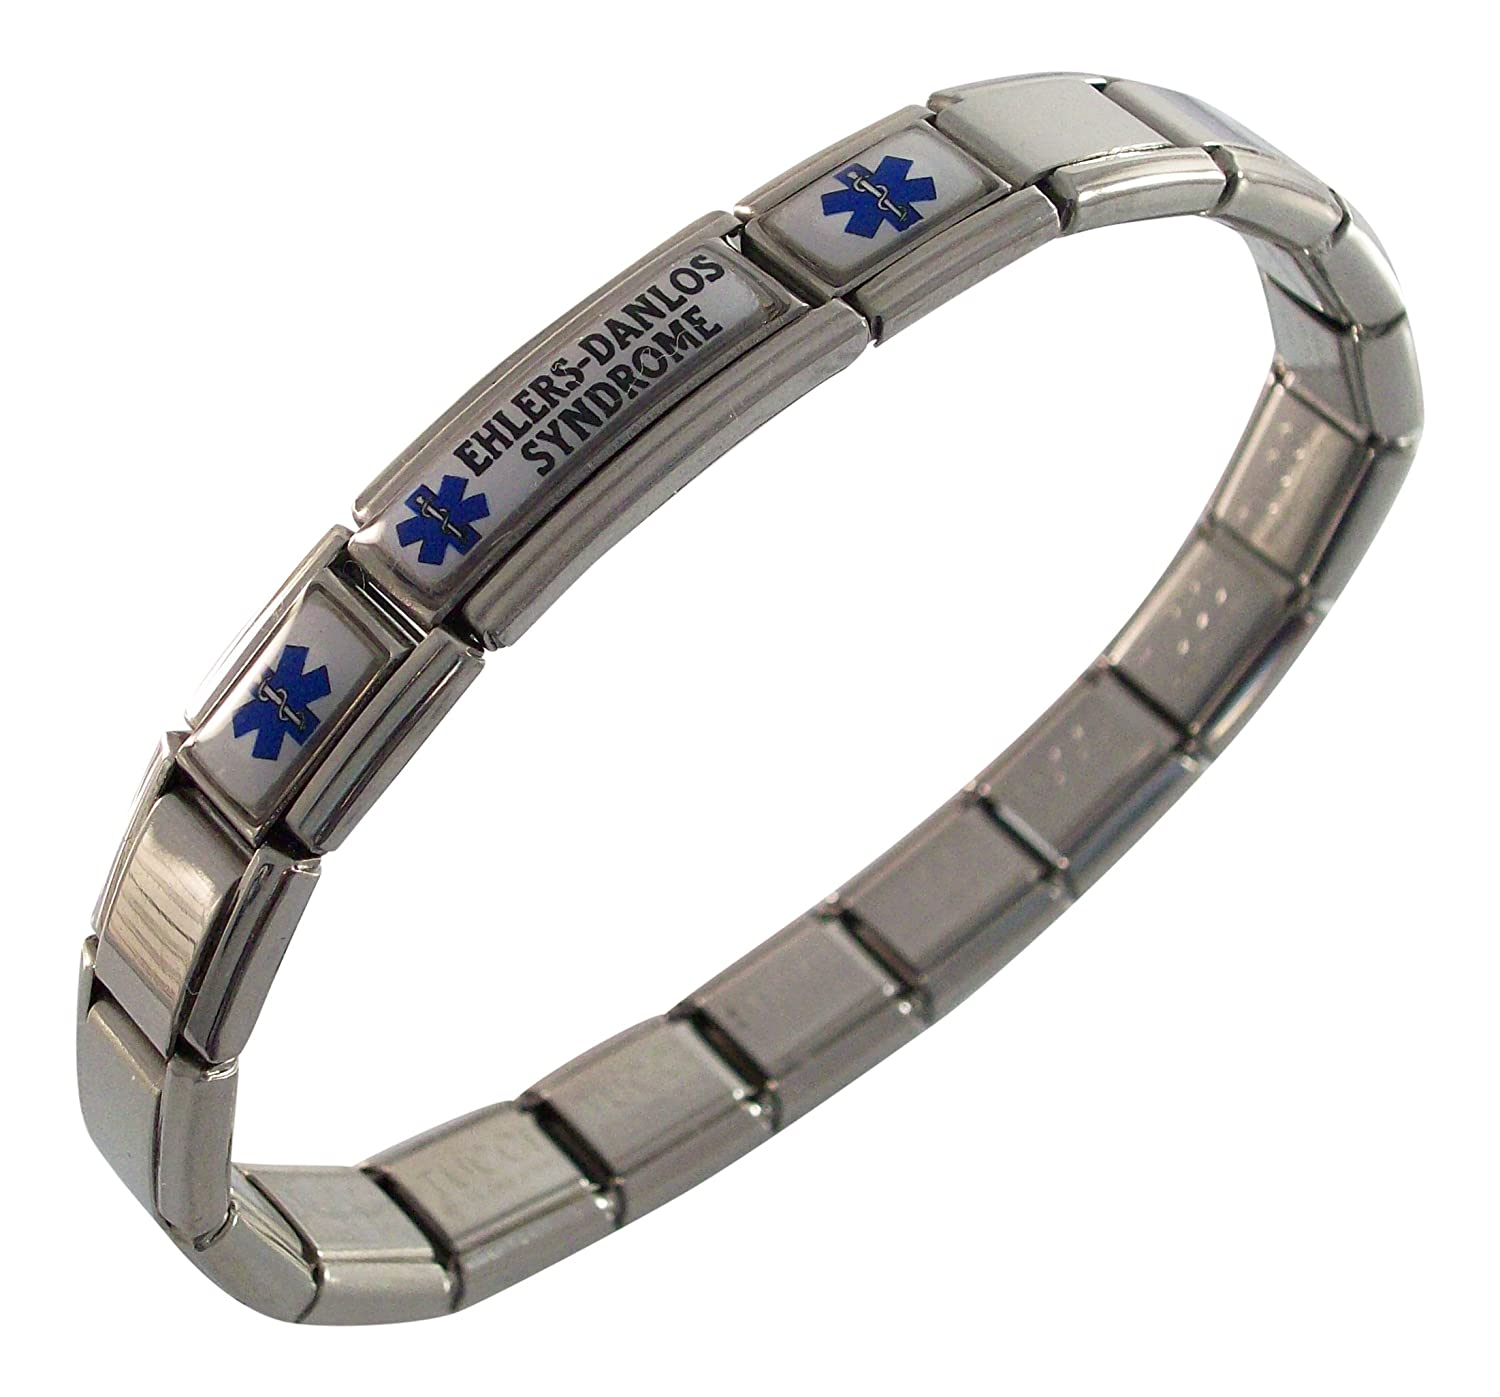 maxfield media cielo copy archives on maxflieds march mattia a of bracelet eds leave comment page category mattiacielo